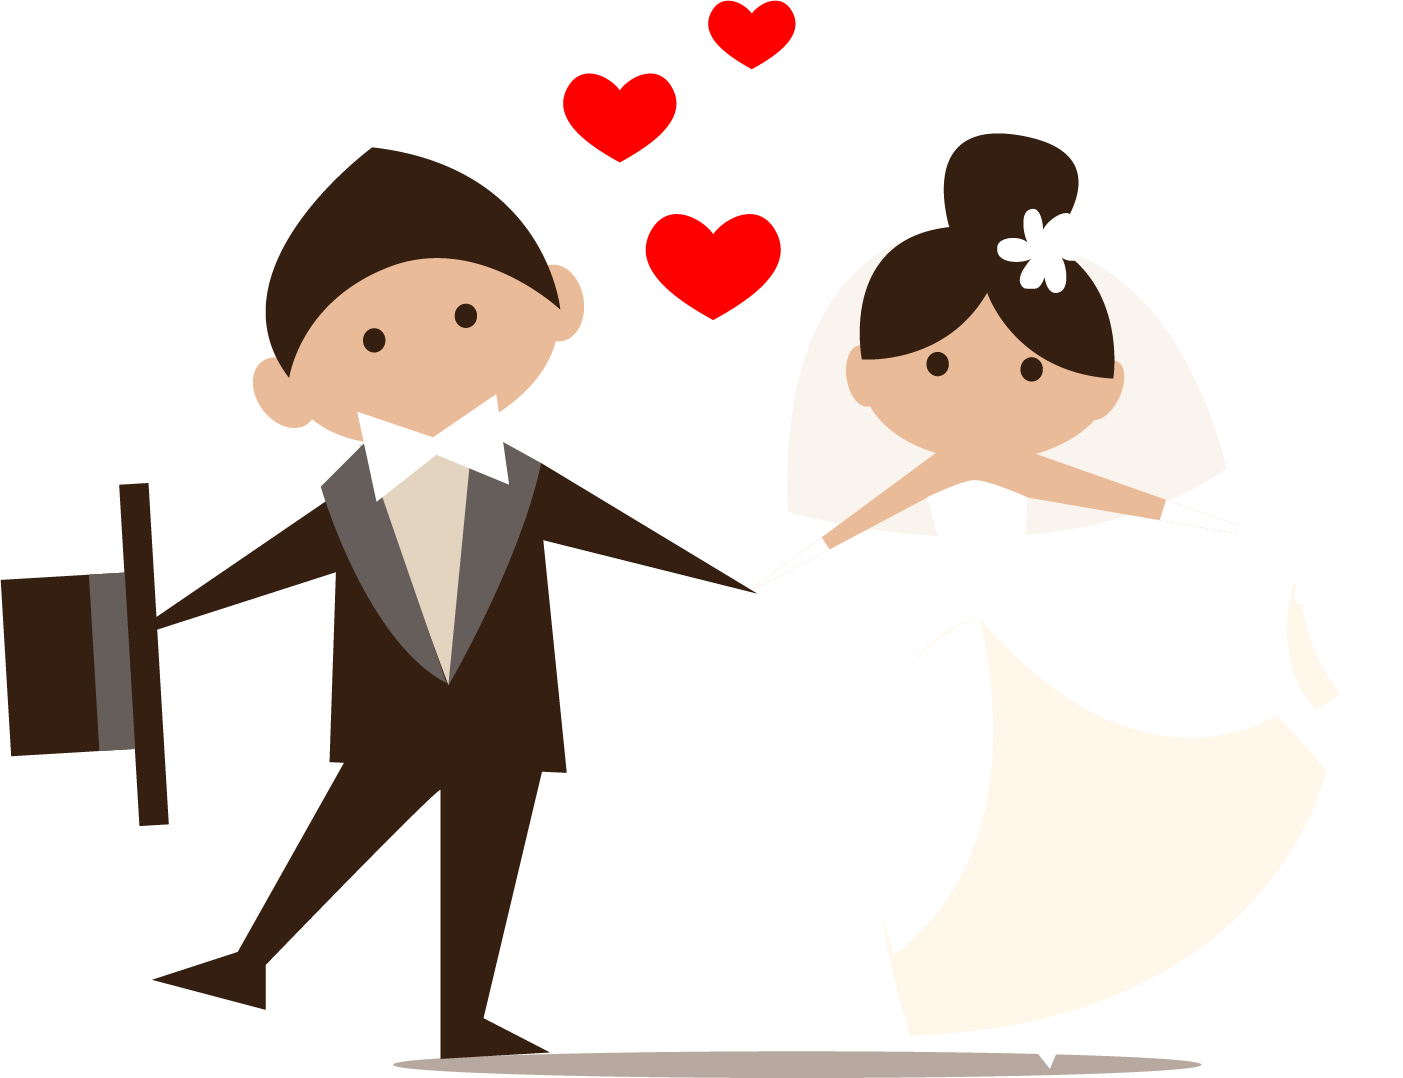 Png transparent free images. Girls clipart wedding